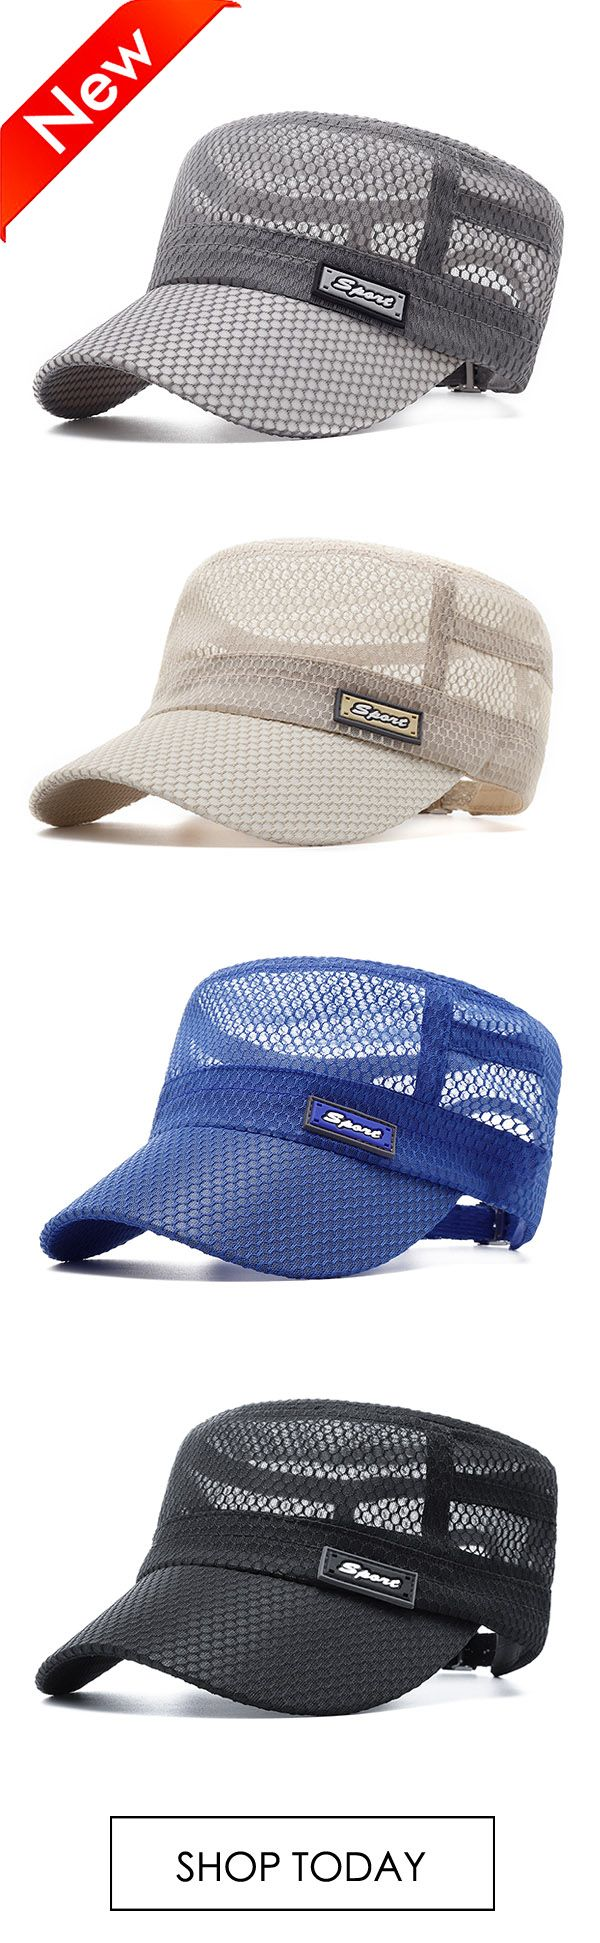 Men Summer Outdoor Mesh Breathable Flat Hat Quick-Drying Casual Sunscreen Visor …